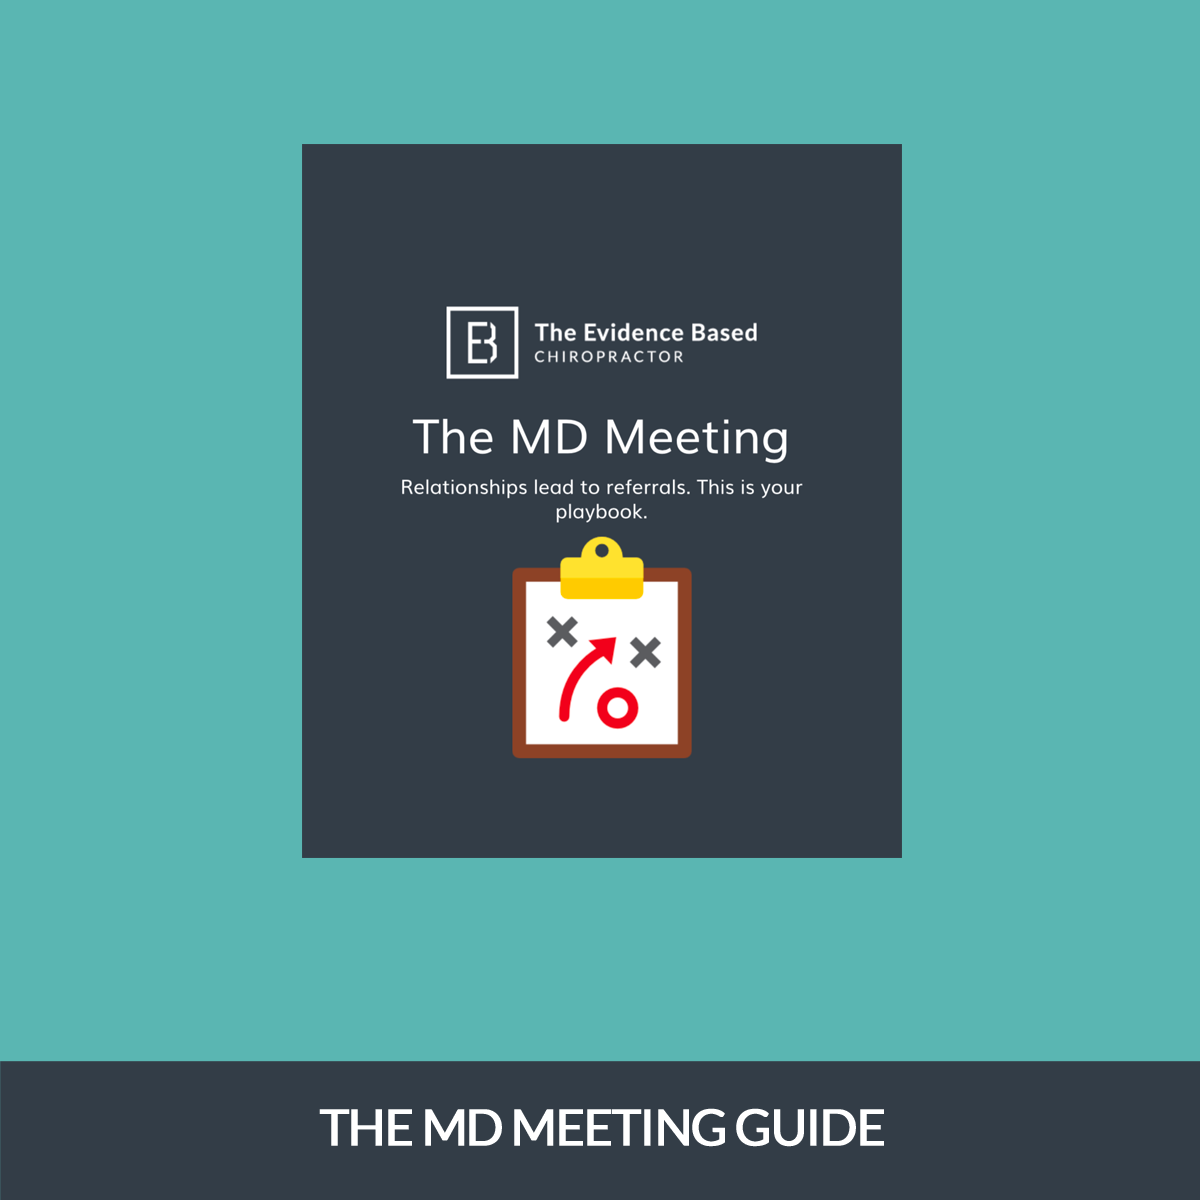 THE MD MEETING GUIDE-squashed.png